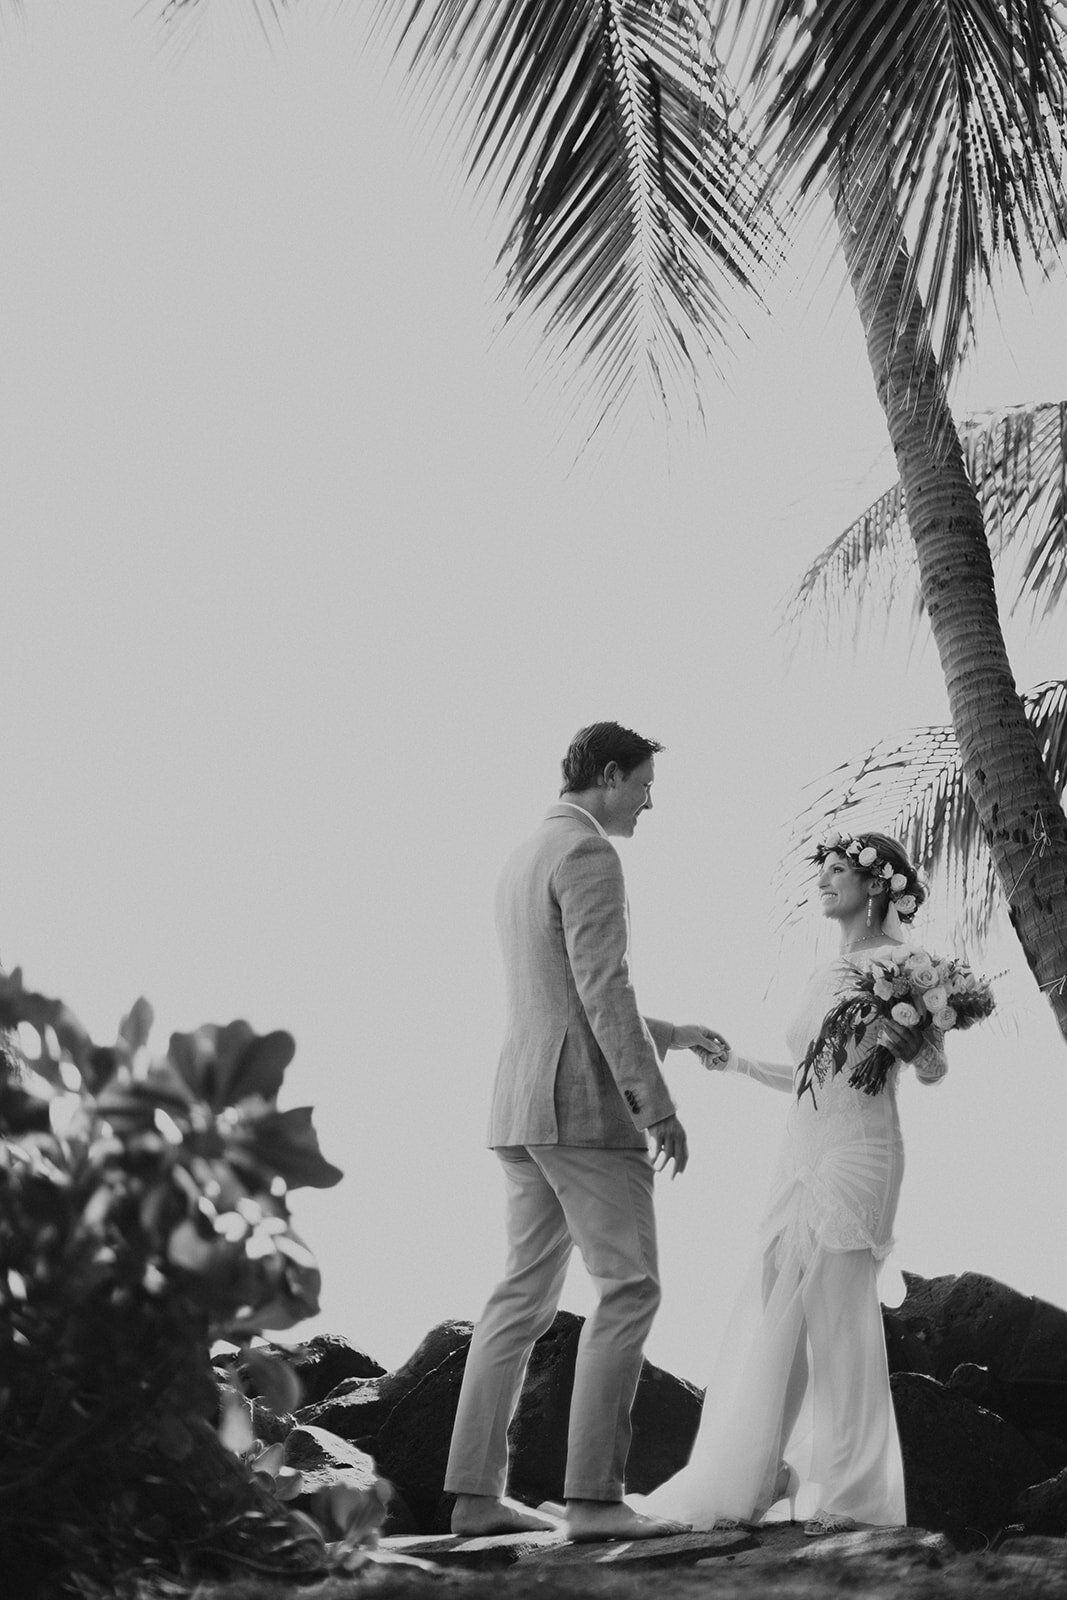 Maui wedding photographer20181126_0126.jpg